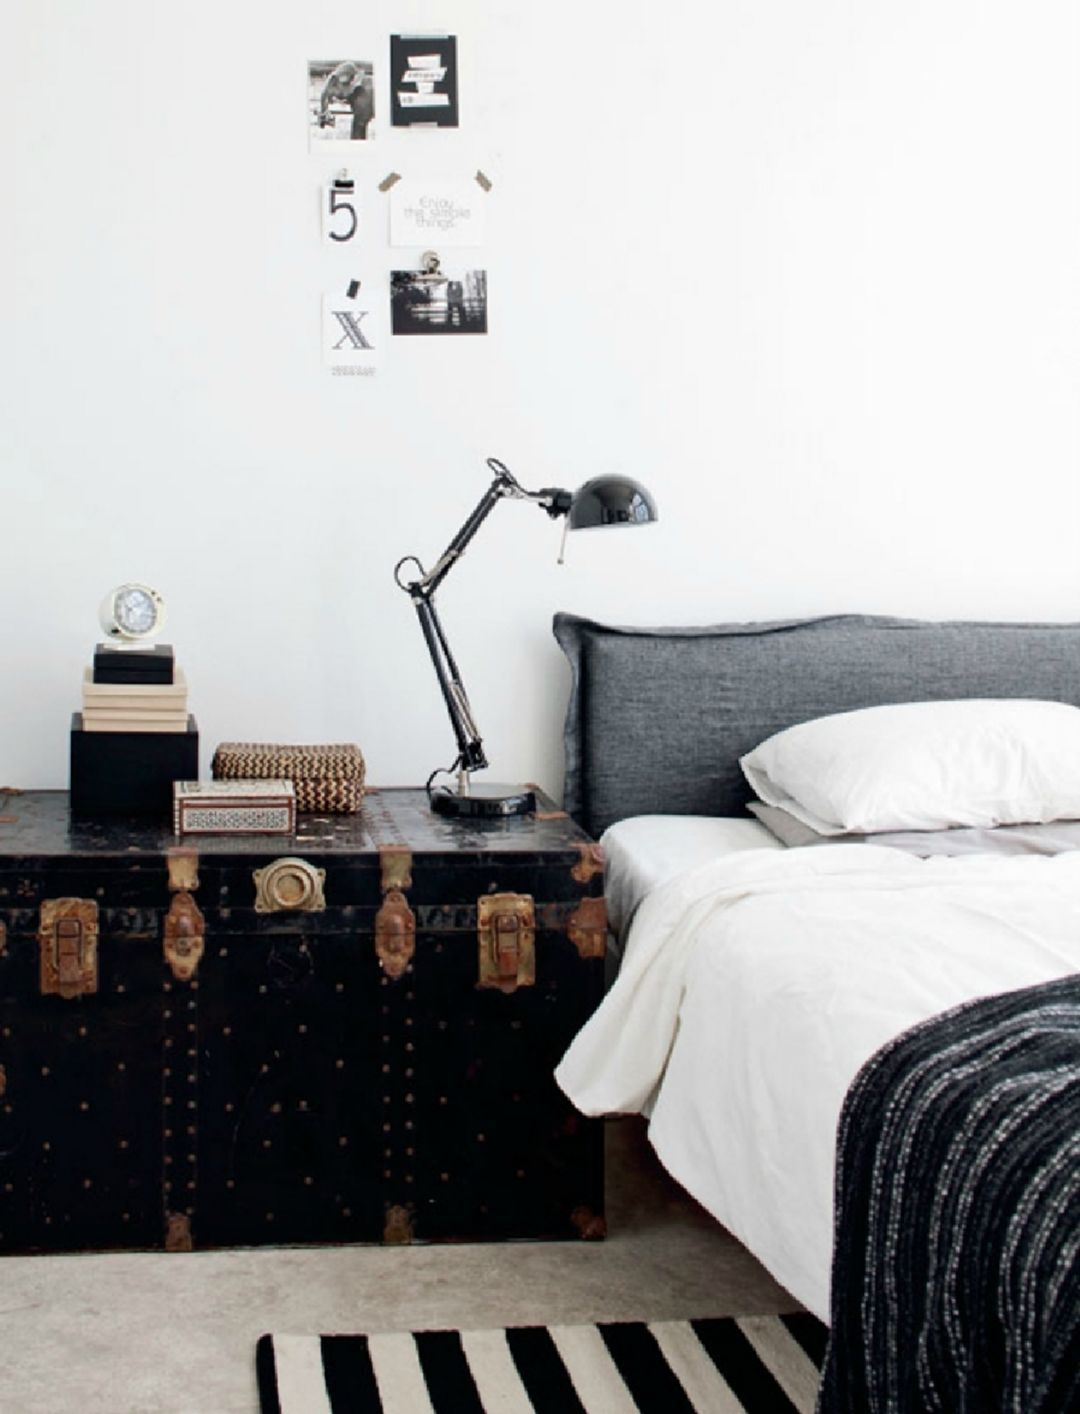 20 Fabulous Monochrome Home Decor Ideas For Your Comfortable Masculine Bedroom Design Industrial Bedroom Design Apartment Bedroom Decor